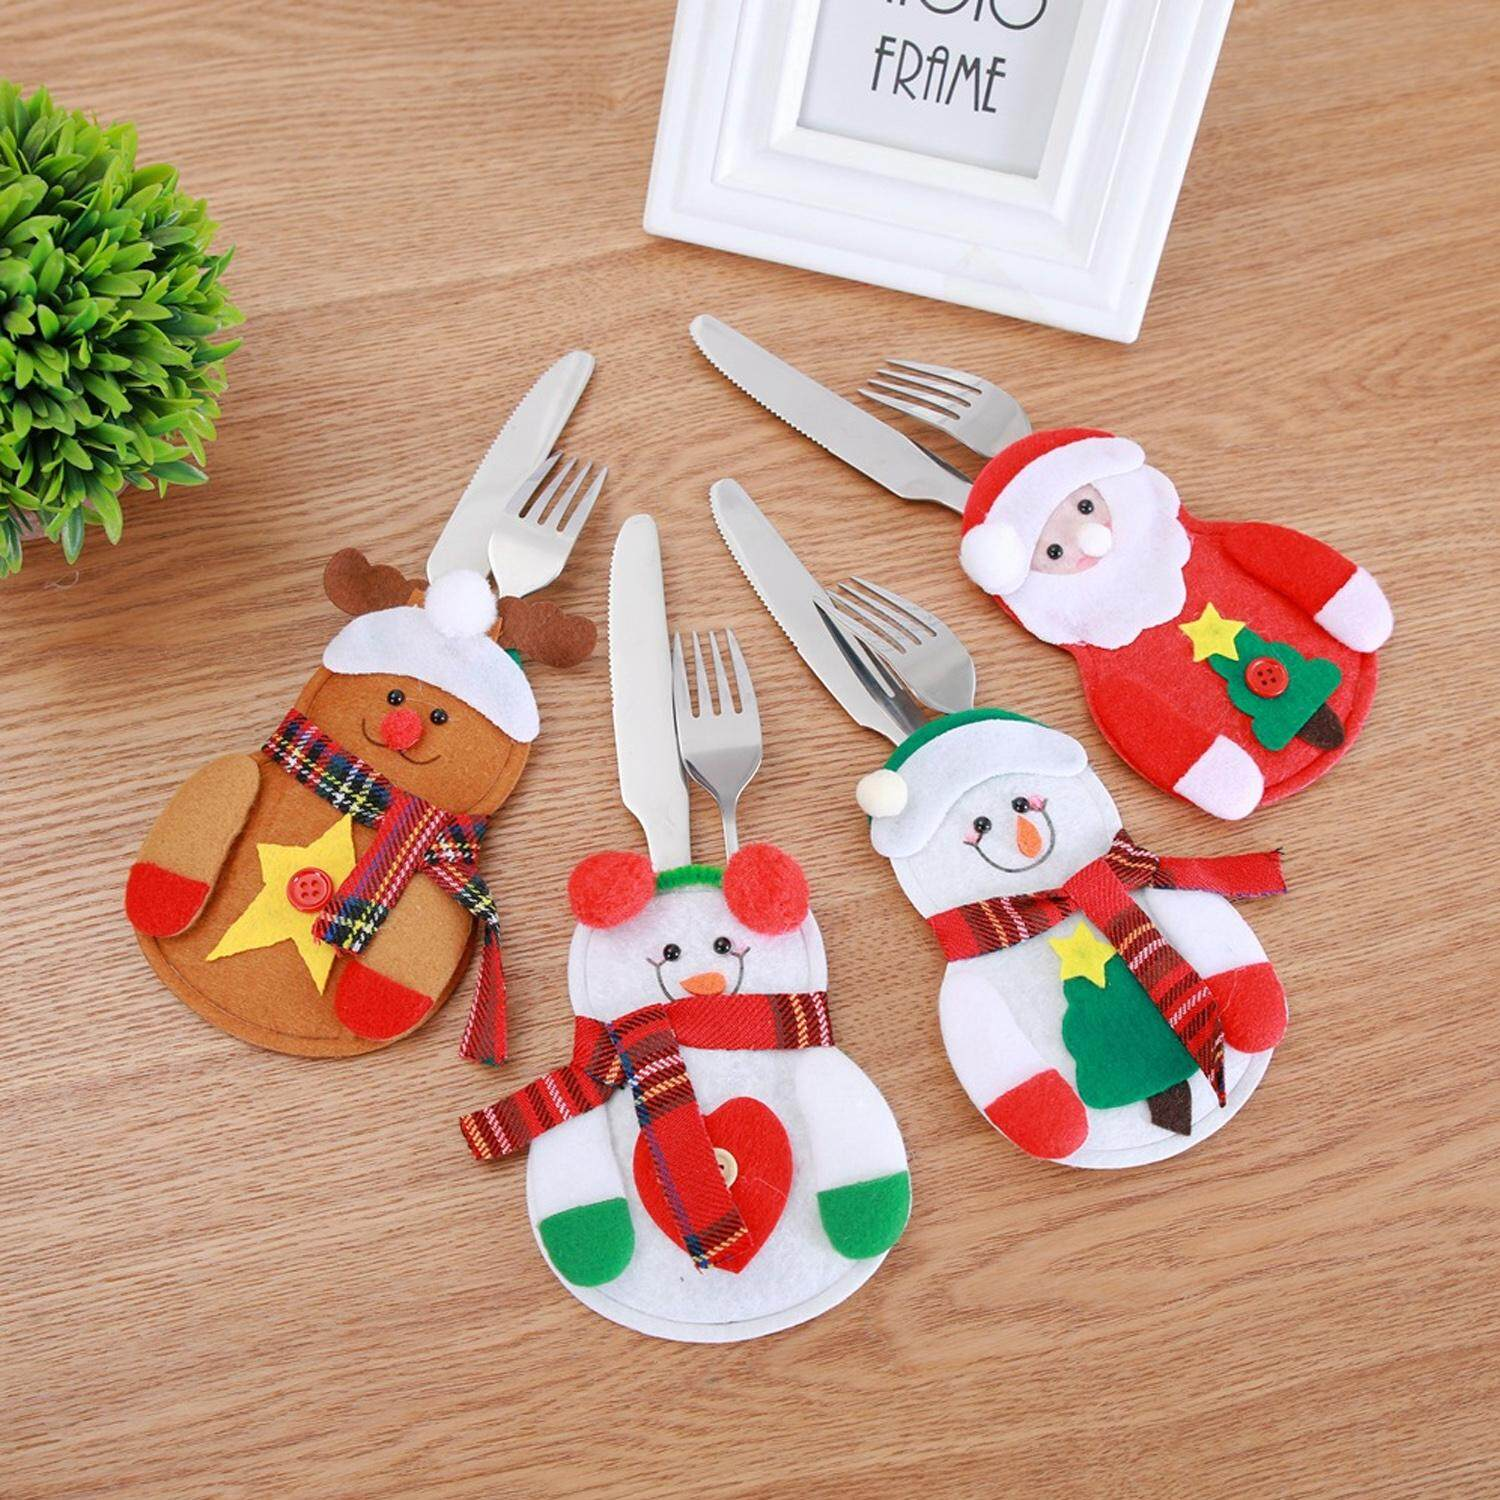 Cute Christmas Santa Holder Dinner Table Decor Cutlery Silverware Bag Pockets